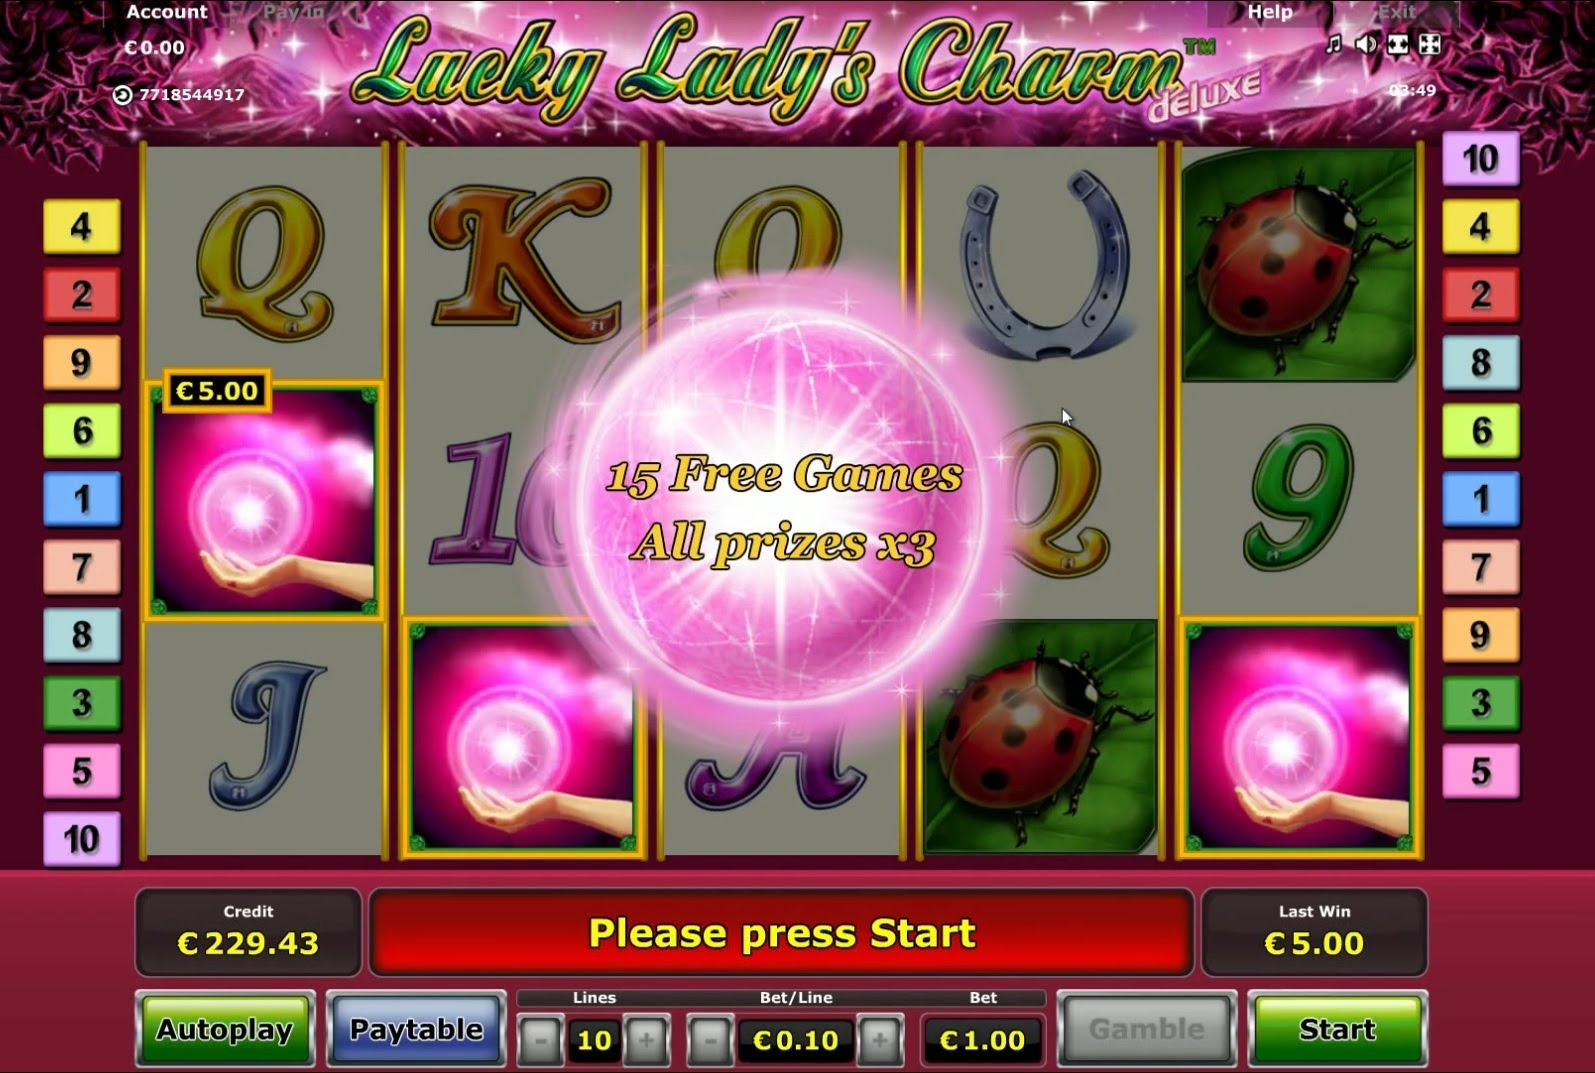 watch casino online free 1995 lucky lady charm slot